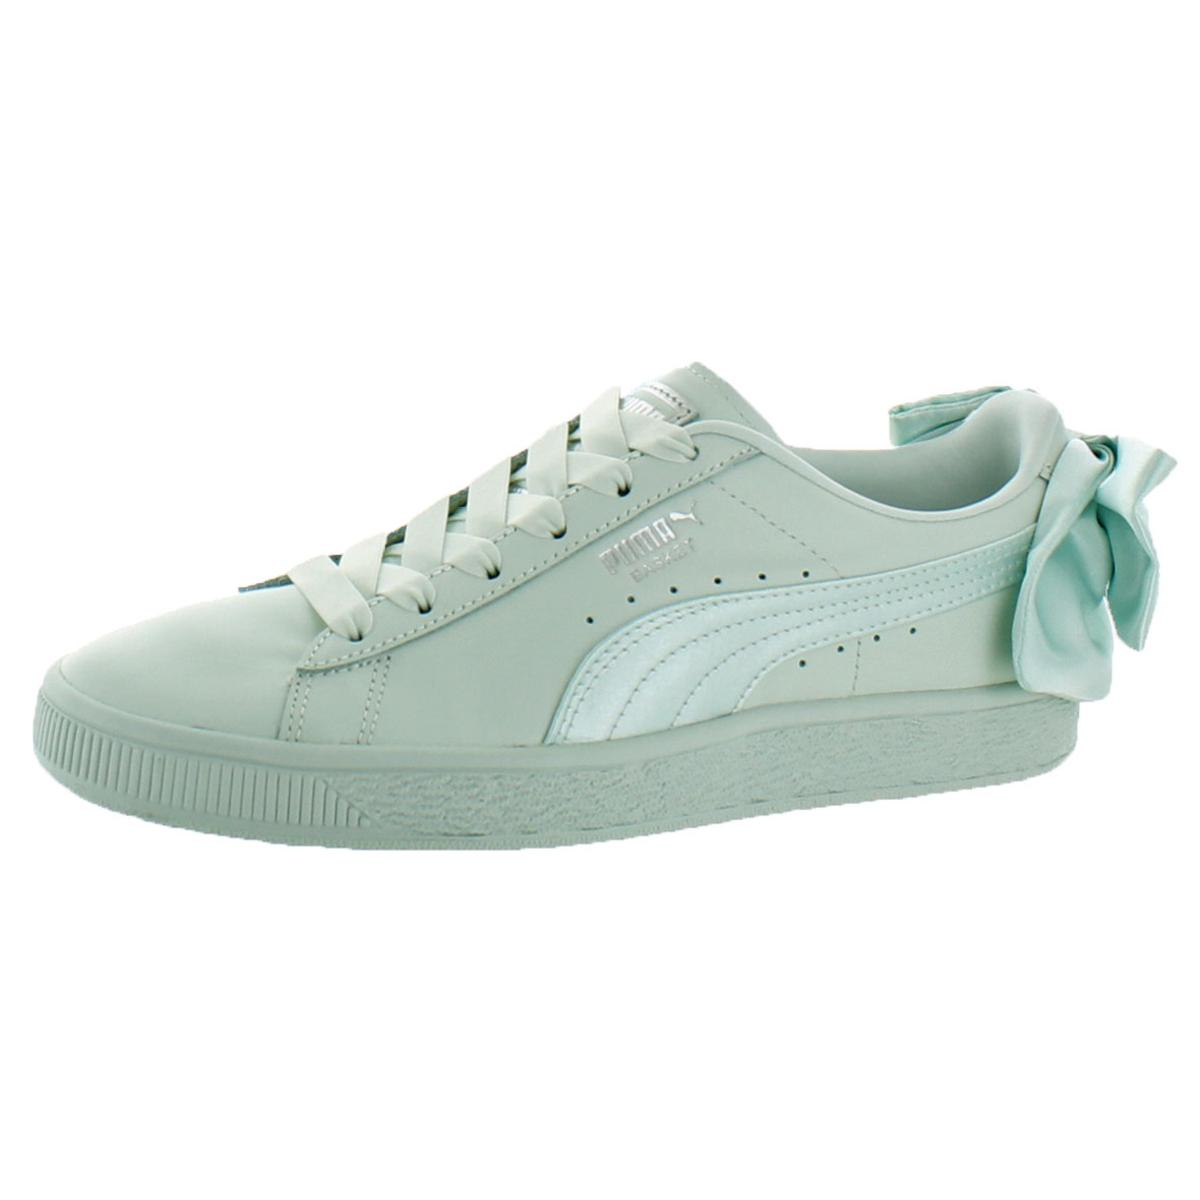 e9d13019d43b9 Details about Puma Womens Basket Bow Blue Fashion Sneakers Shoes 8.5 Medium  (B,M) BHFO 4837